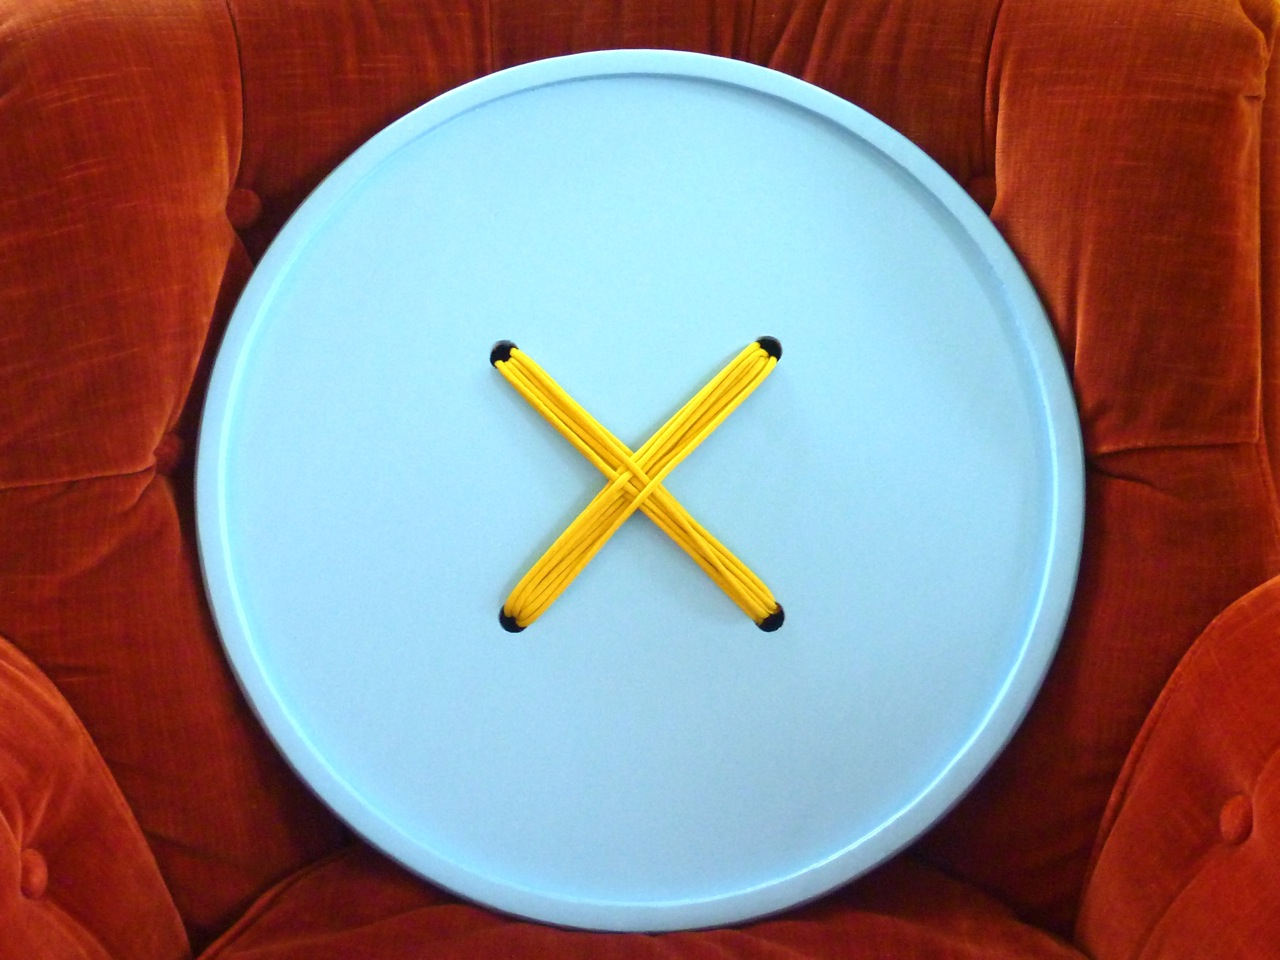 Giant button - a nice handmade gift for crafters